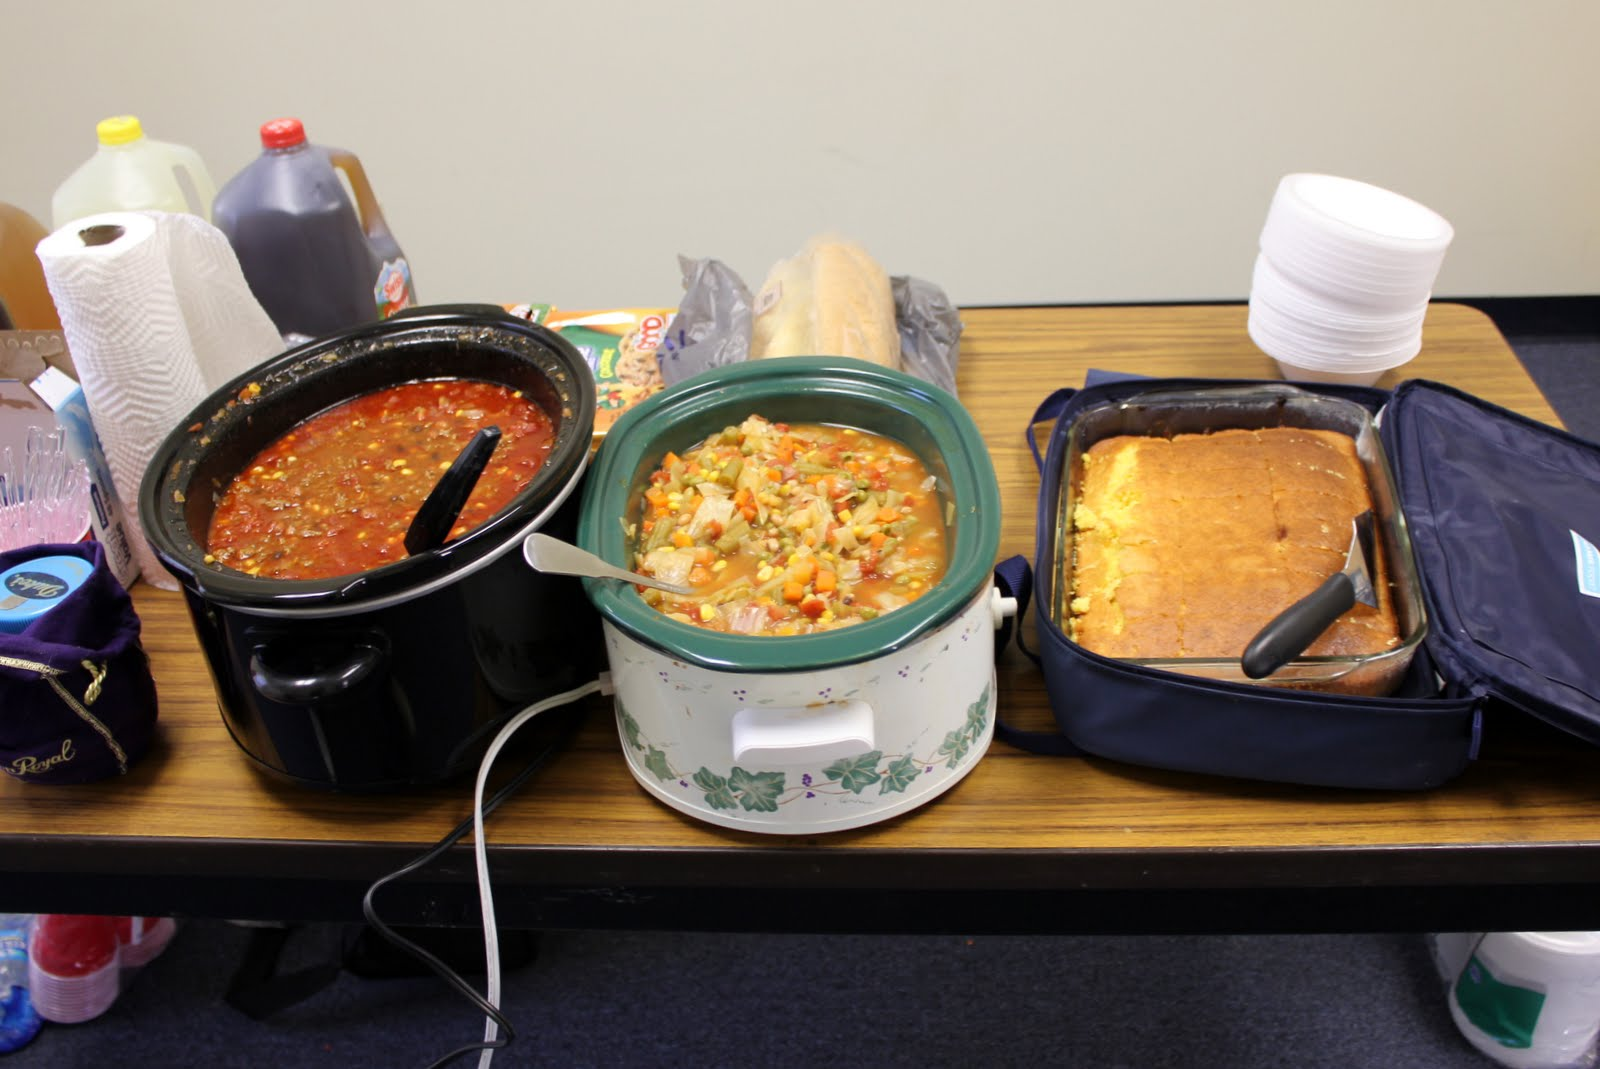 Photo: On time lunch ready at 12:57.  Libby made the cornbread and she & Randy brought spoons, bowls, and tea.